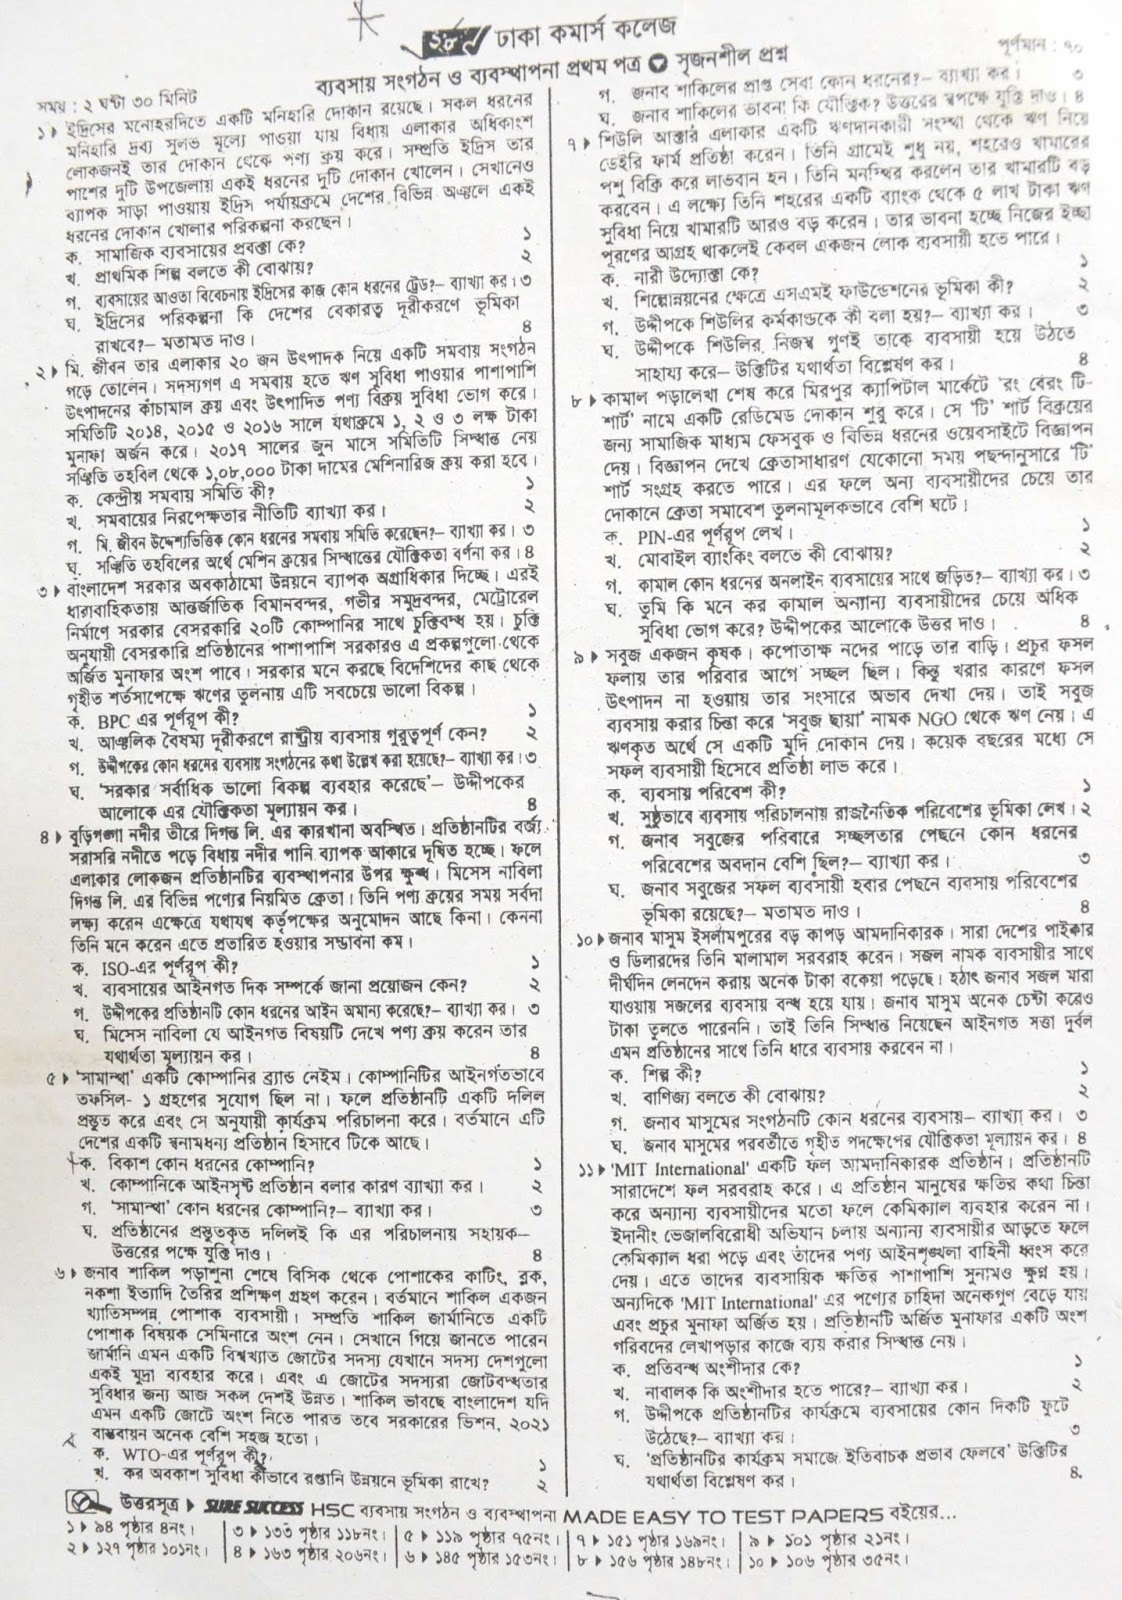 hsc HSC Business Organization & Management 1st Paper suggestion, exam question paper, model question, mcq question, question pattern, preparation for dhaka board, all boards